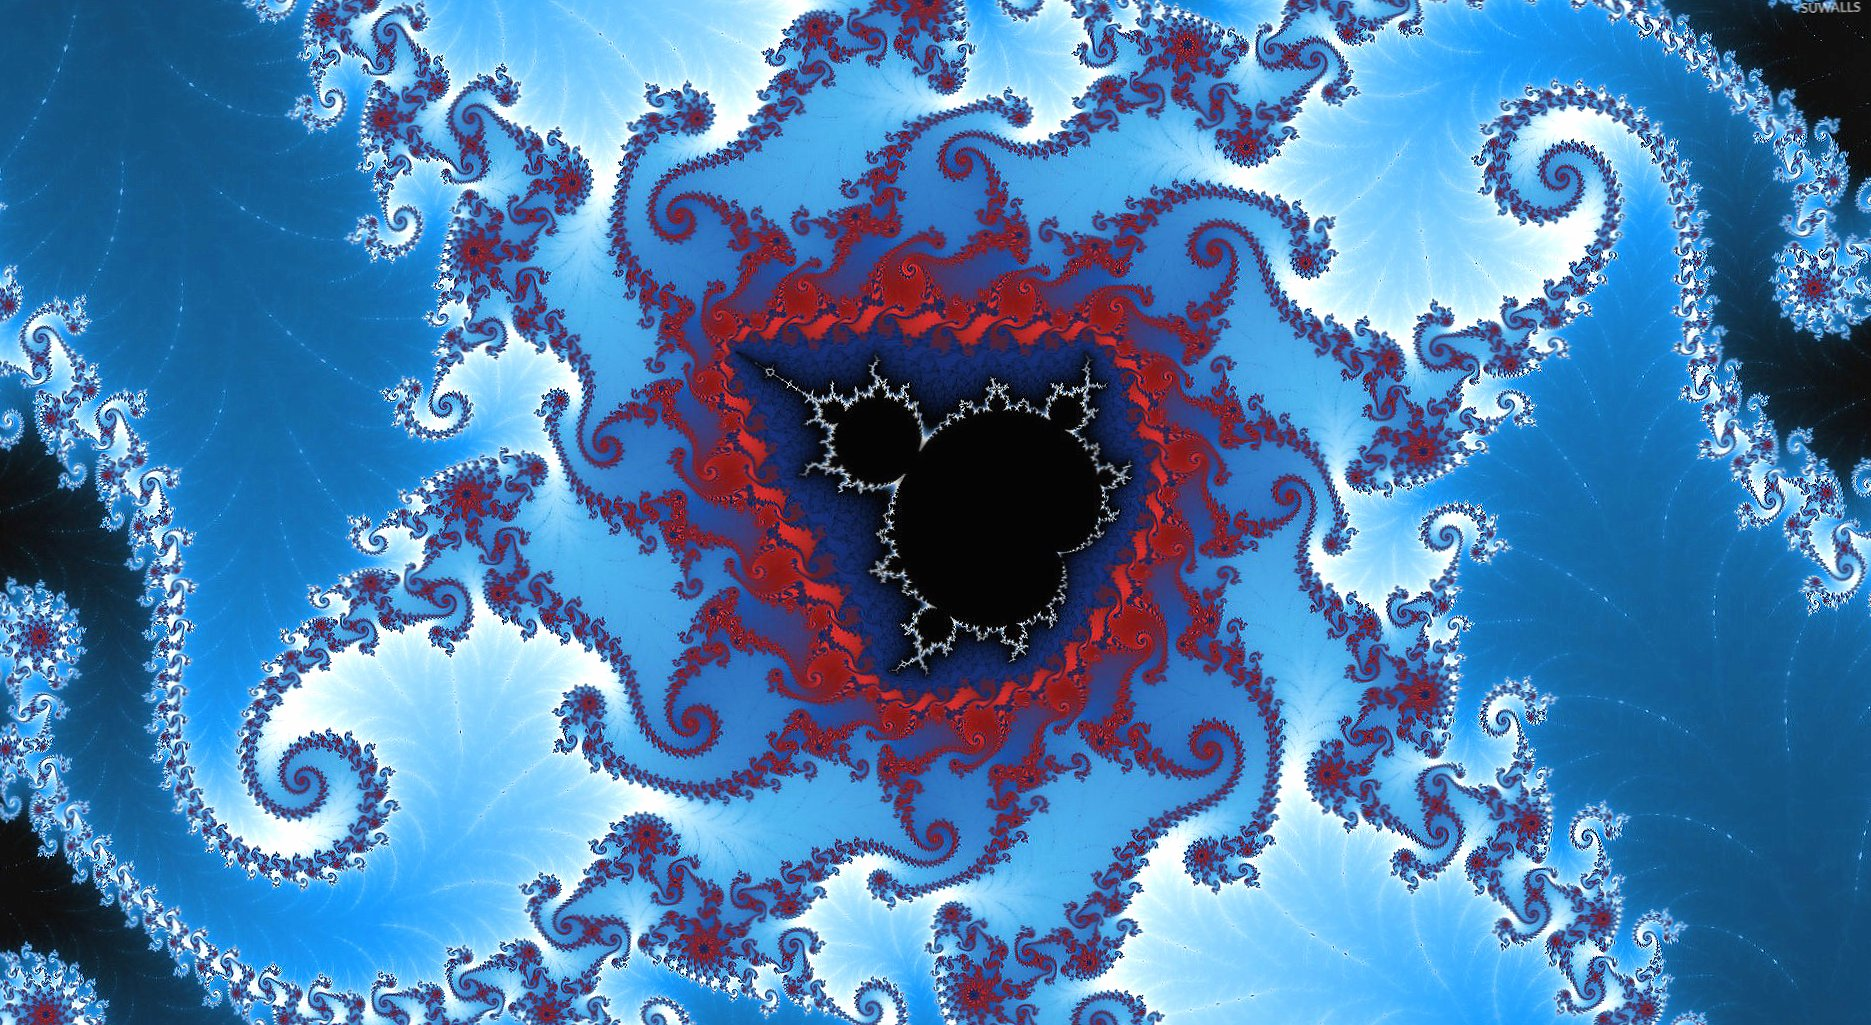 Red and blue fractal shapes wallpapers HD quality